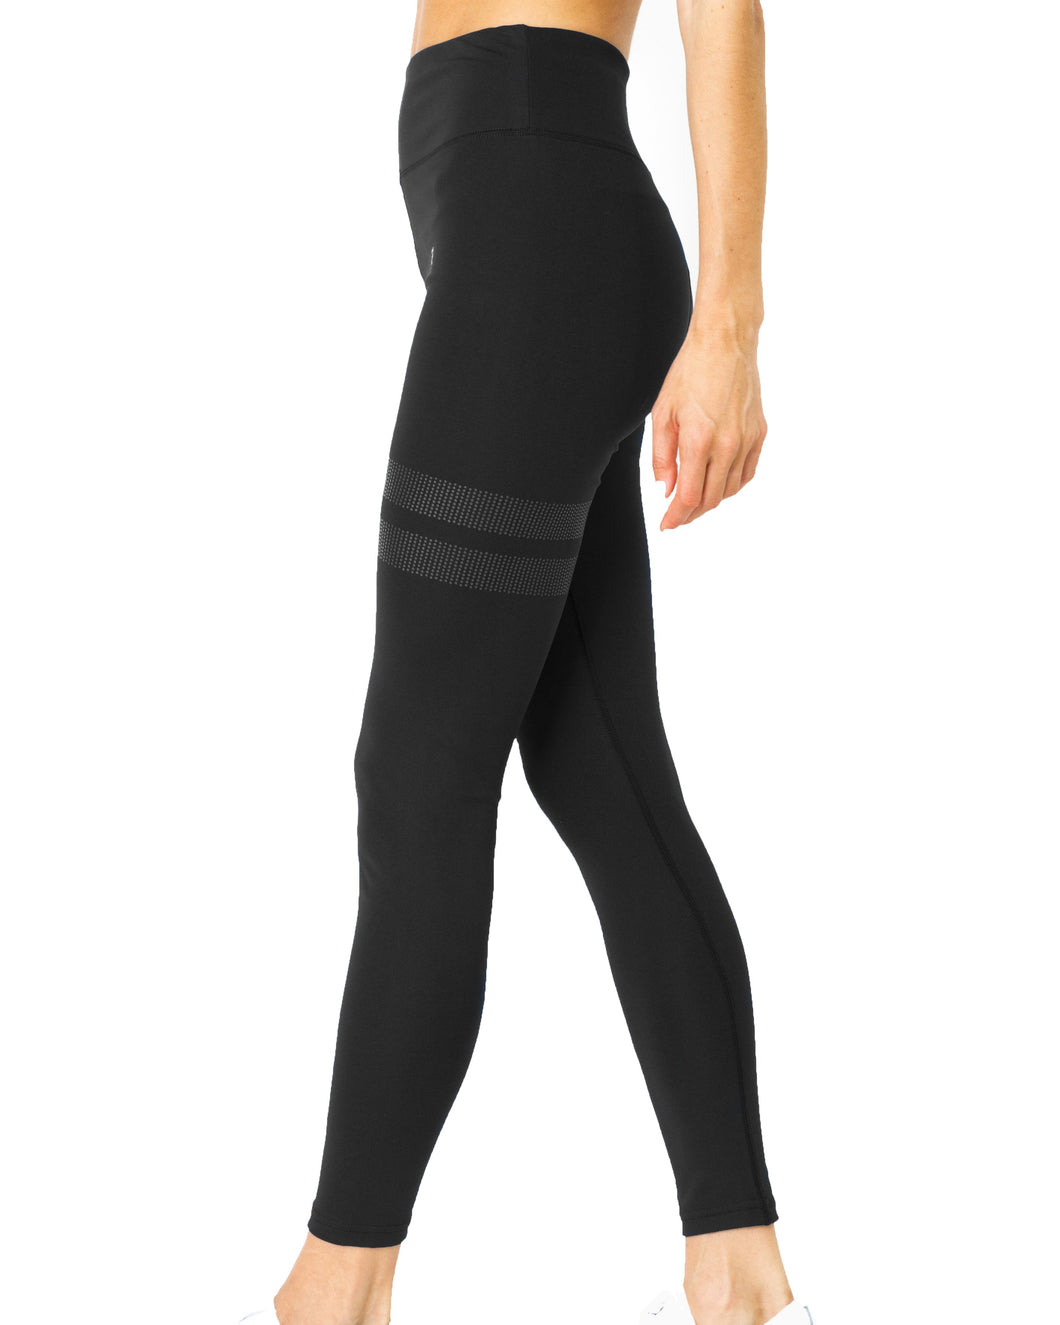 Ashton Leggings - Black